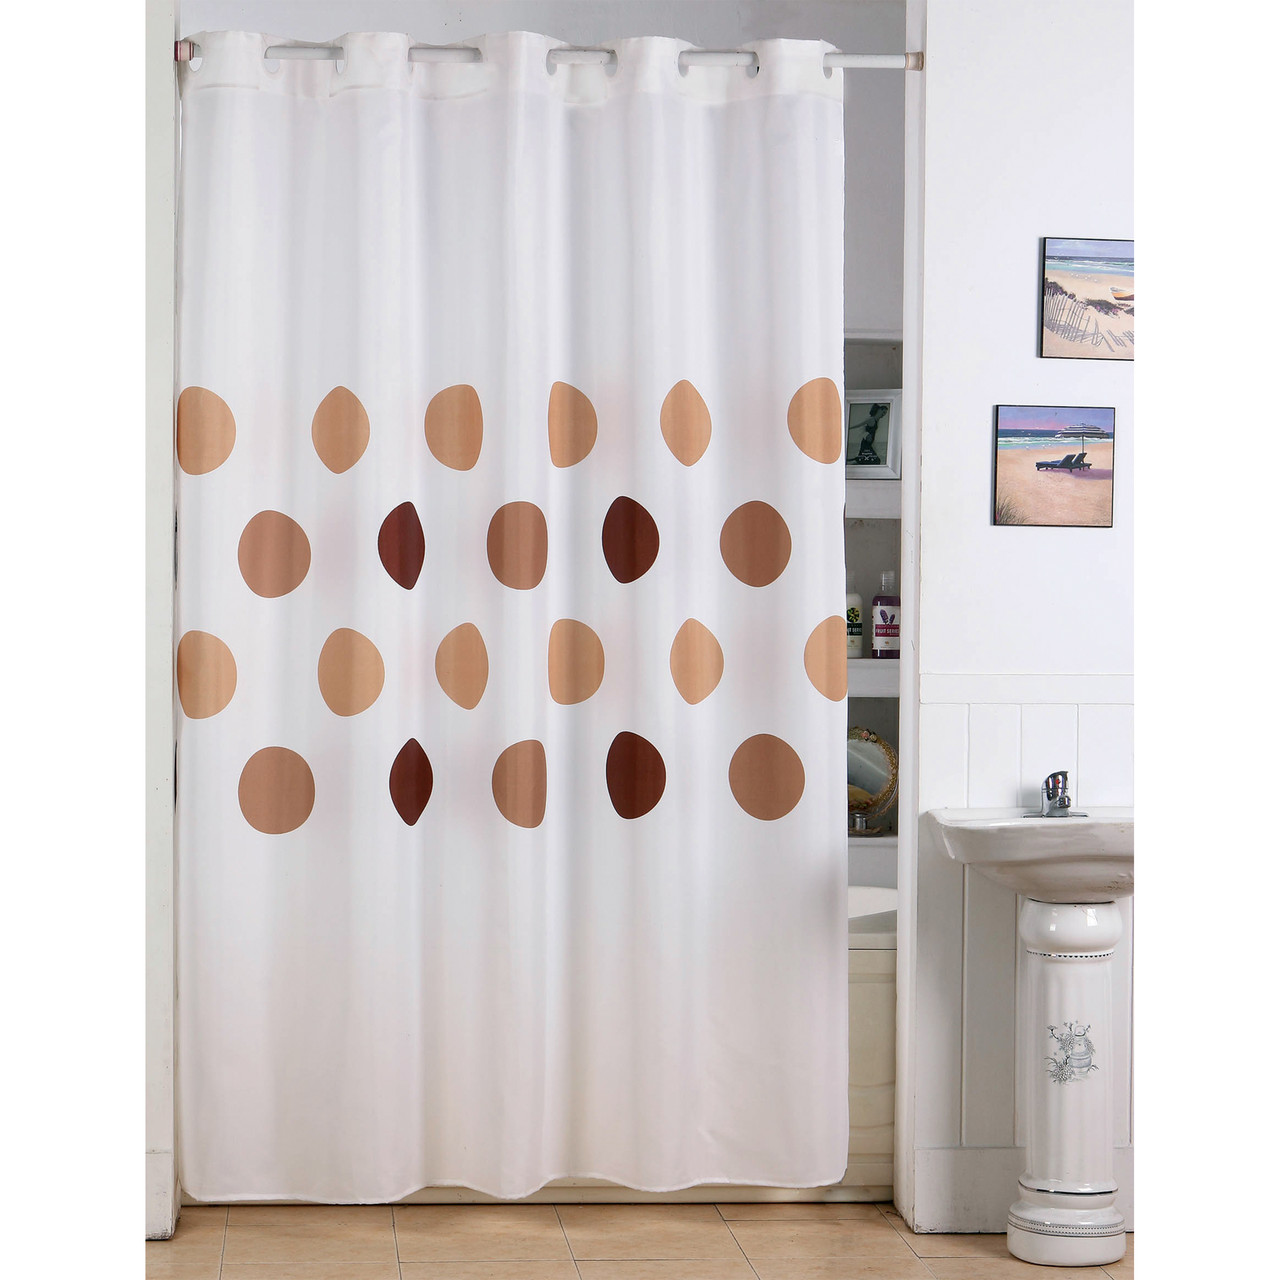 extra long shower curtain 72 x 78 inch msv france polyester fabric polka dot brown